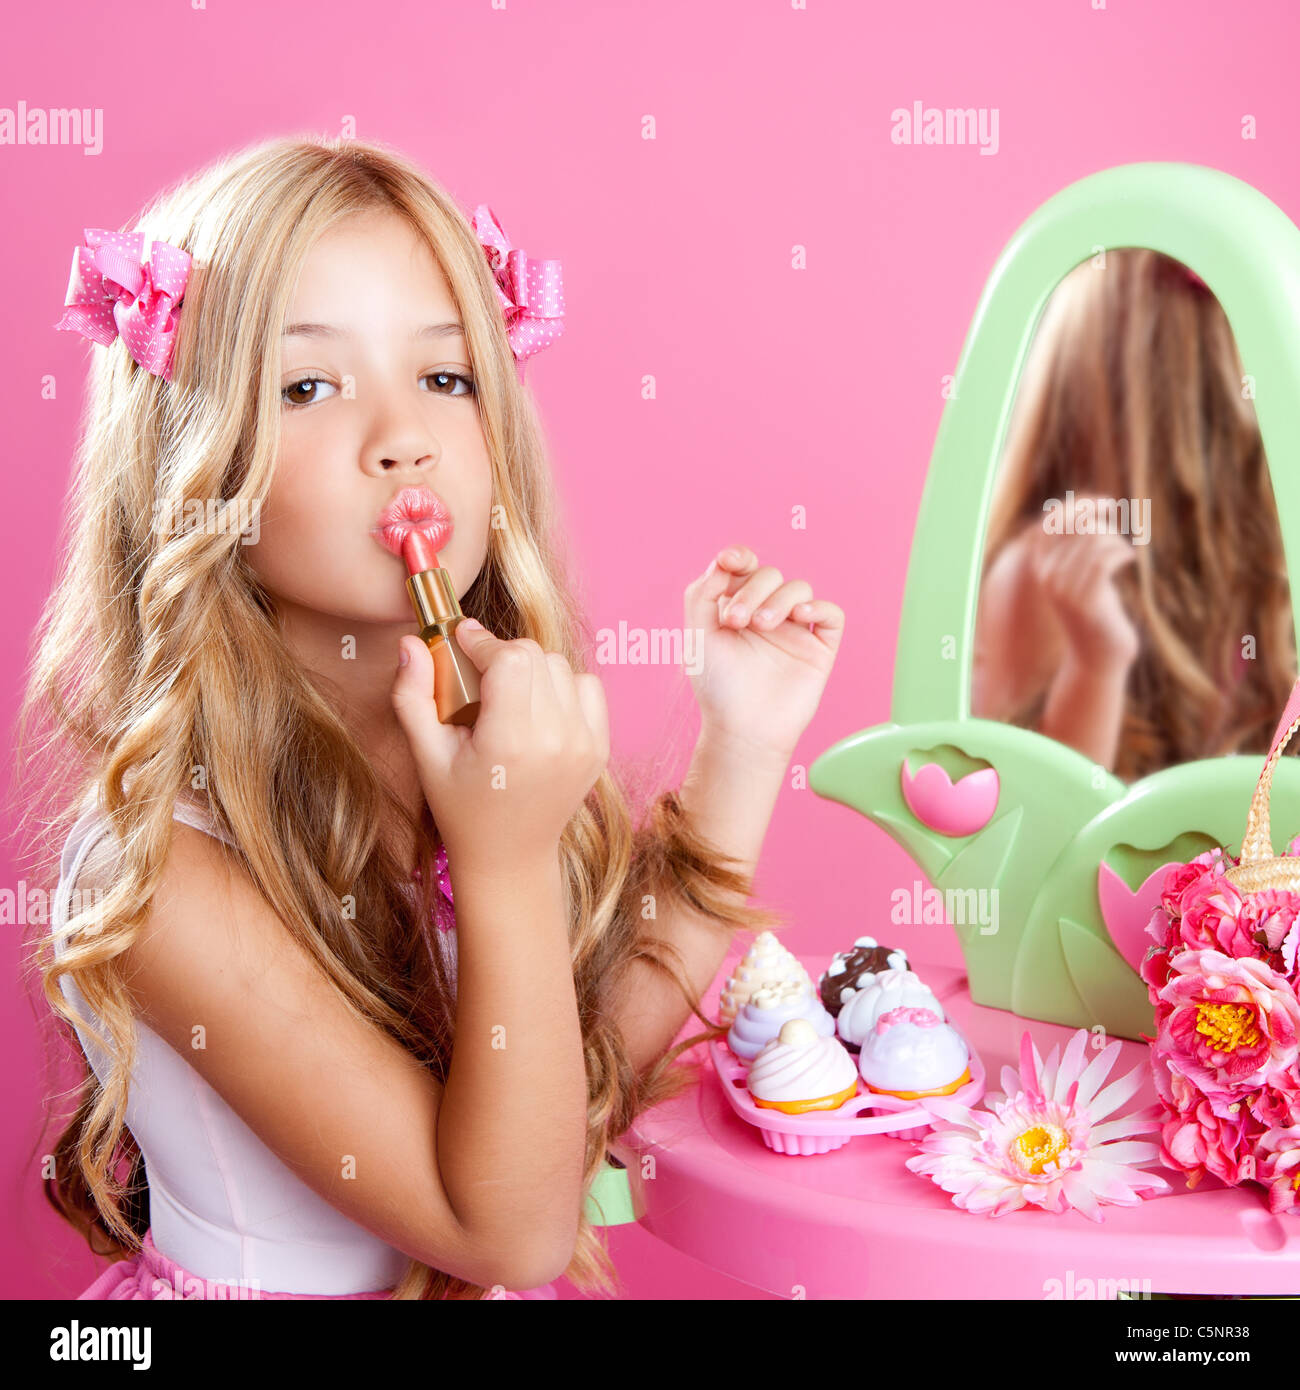 Stock Photo - Children Fashion Doll Little Girl Lipstick Makeup In Pink  Vanity With Mirror